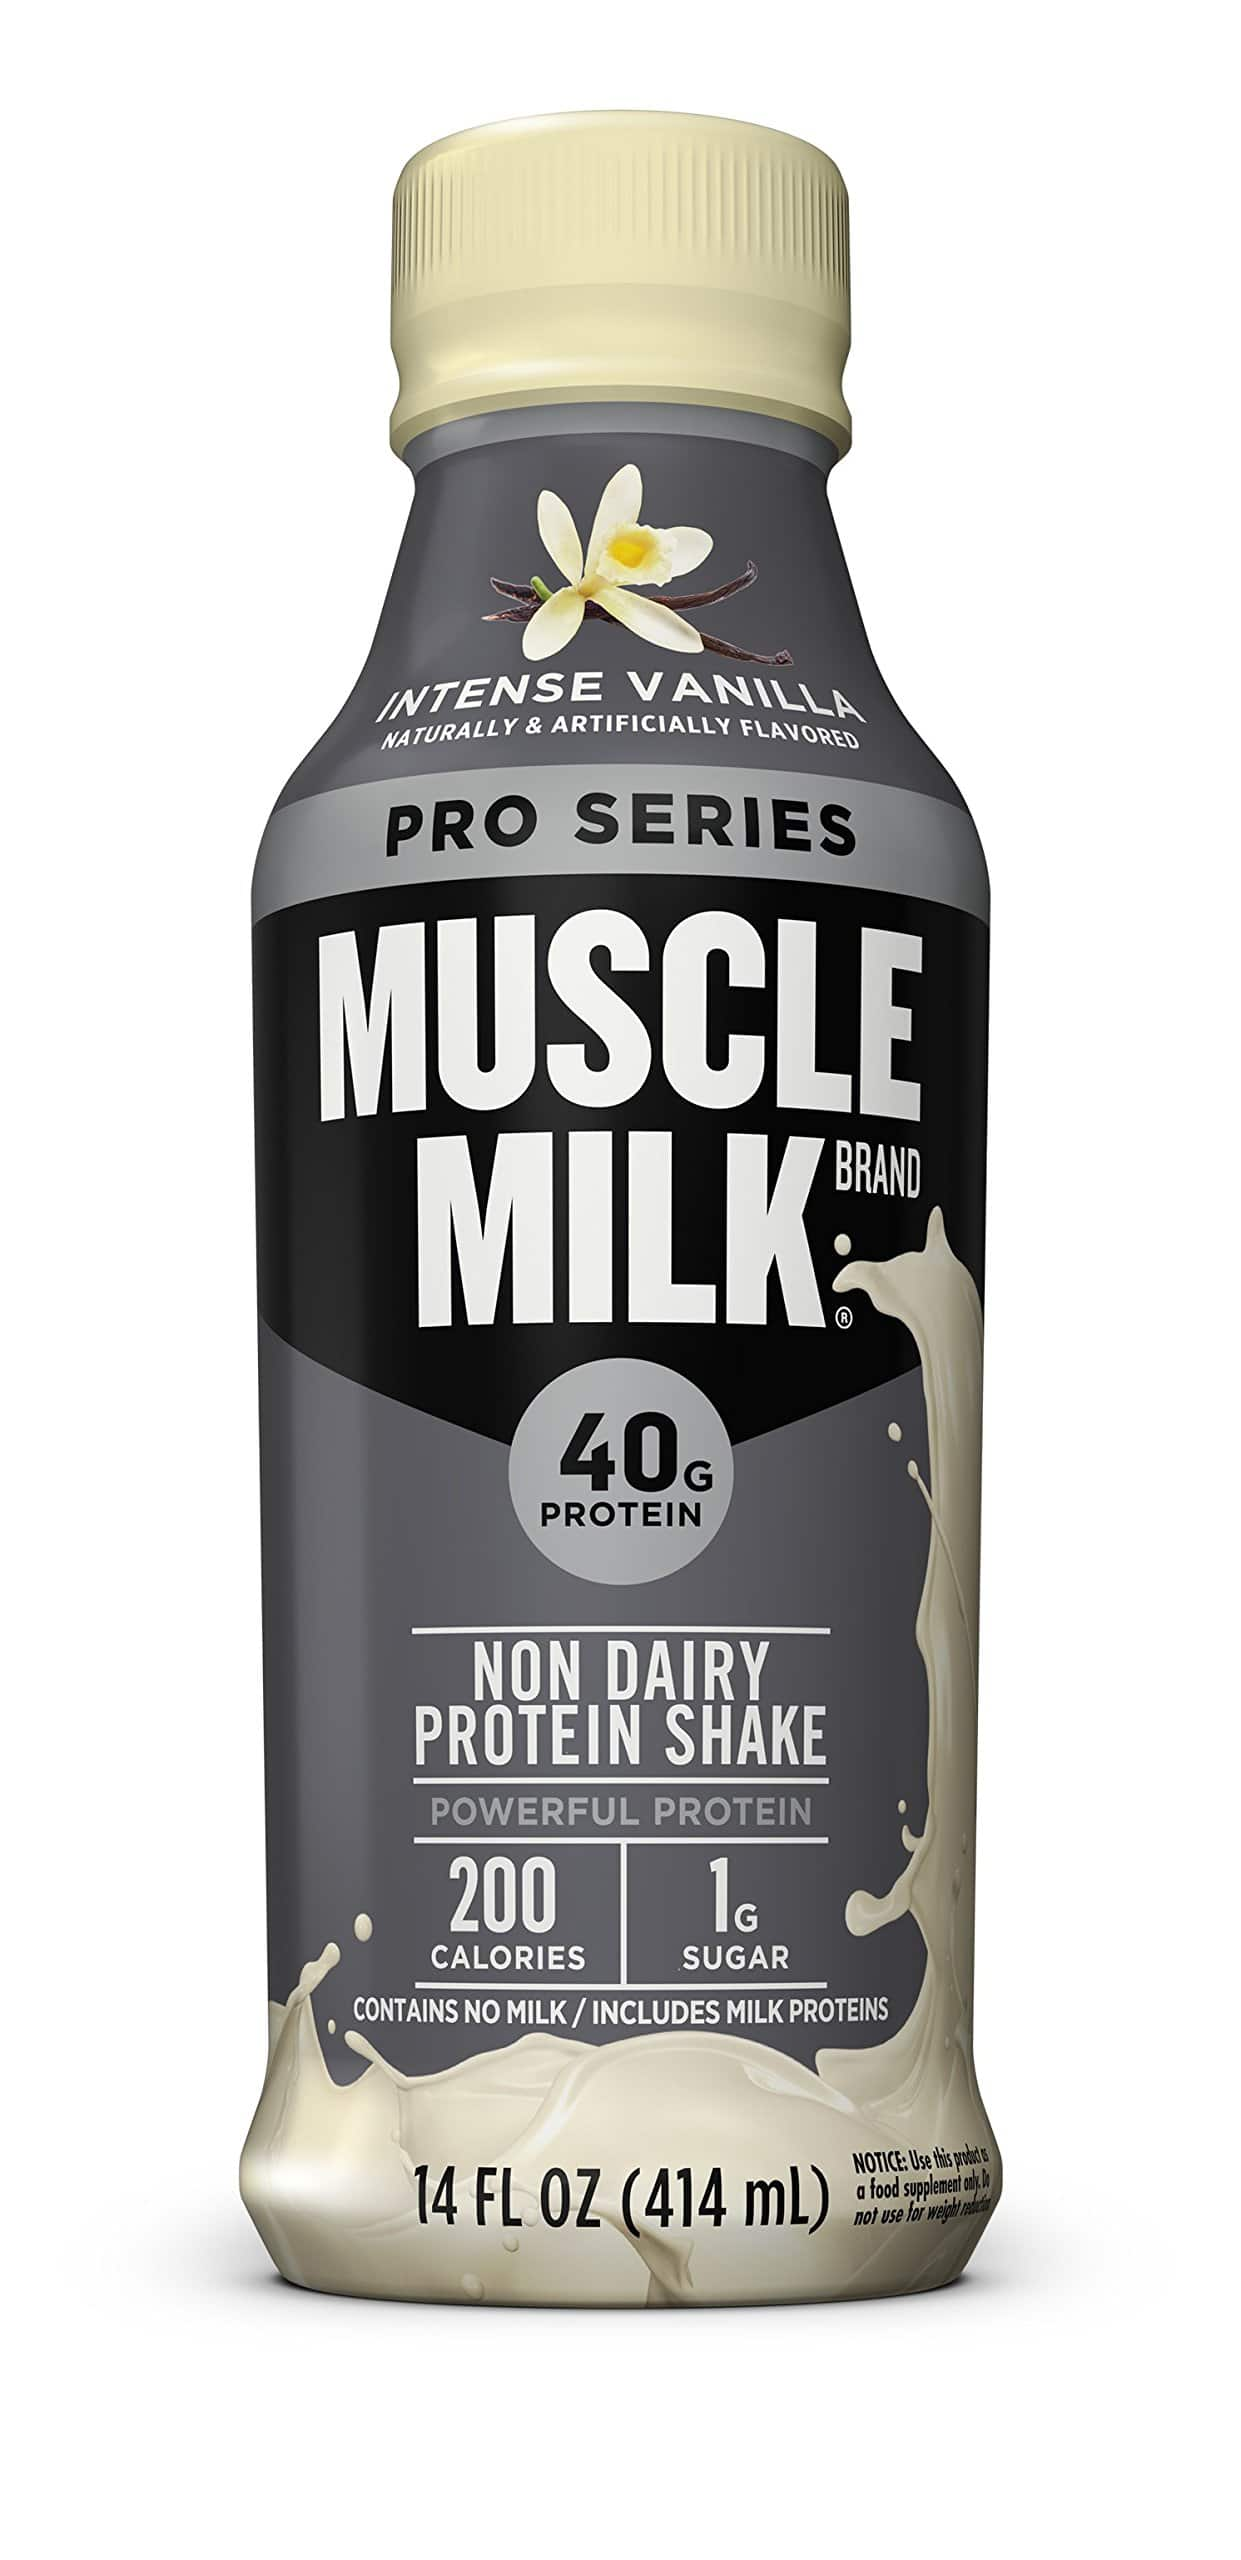 Muscle Milk Pro Series Protein Shake, Crushing Cookies 'N Crème, 40g Protein, 14 FL OZ, 12 count - As low as $8.14 - Amazon w/ SS